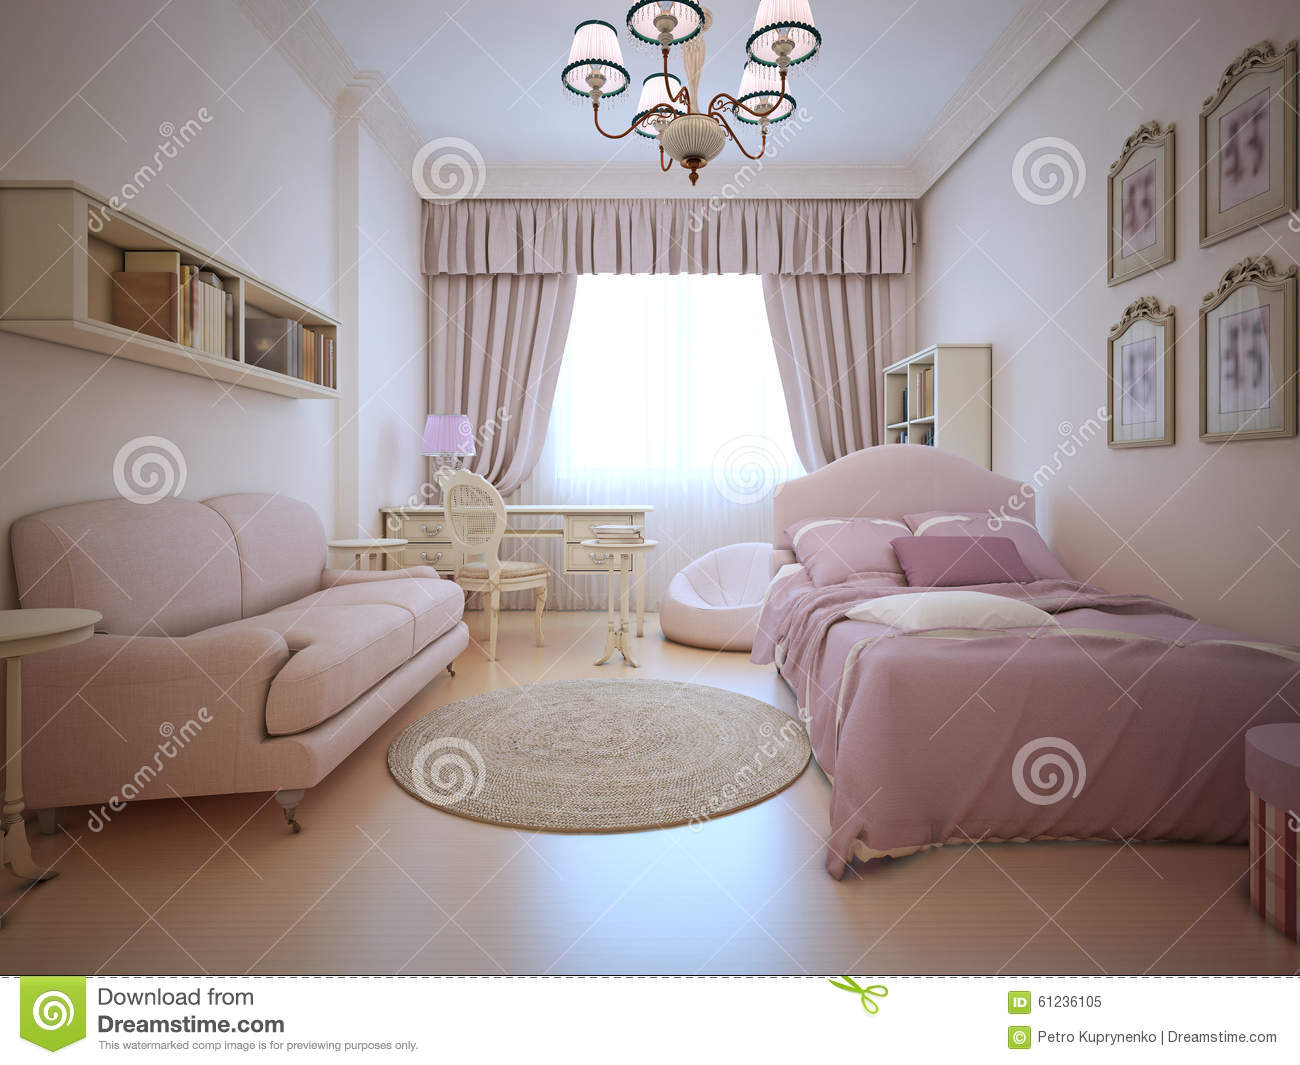 Stupendous Teenagers Bedroom With Sofa And Bed Stock Illustration Evergreenethics Interior Chair Design Evergreenethicsorg